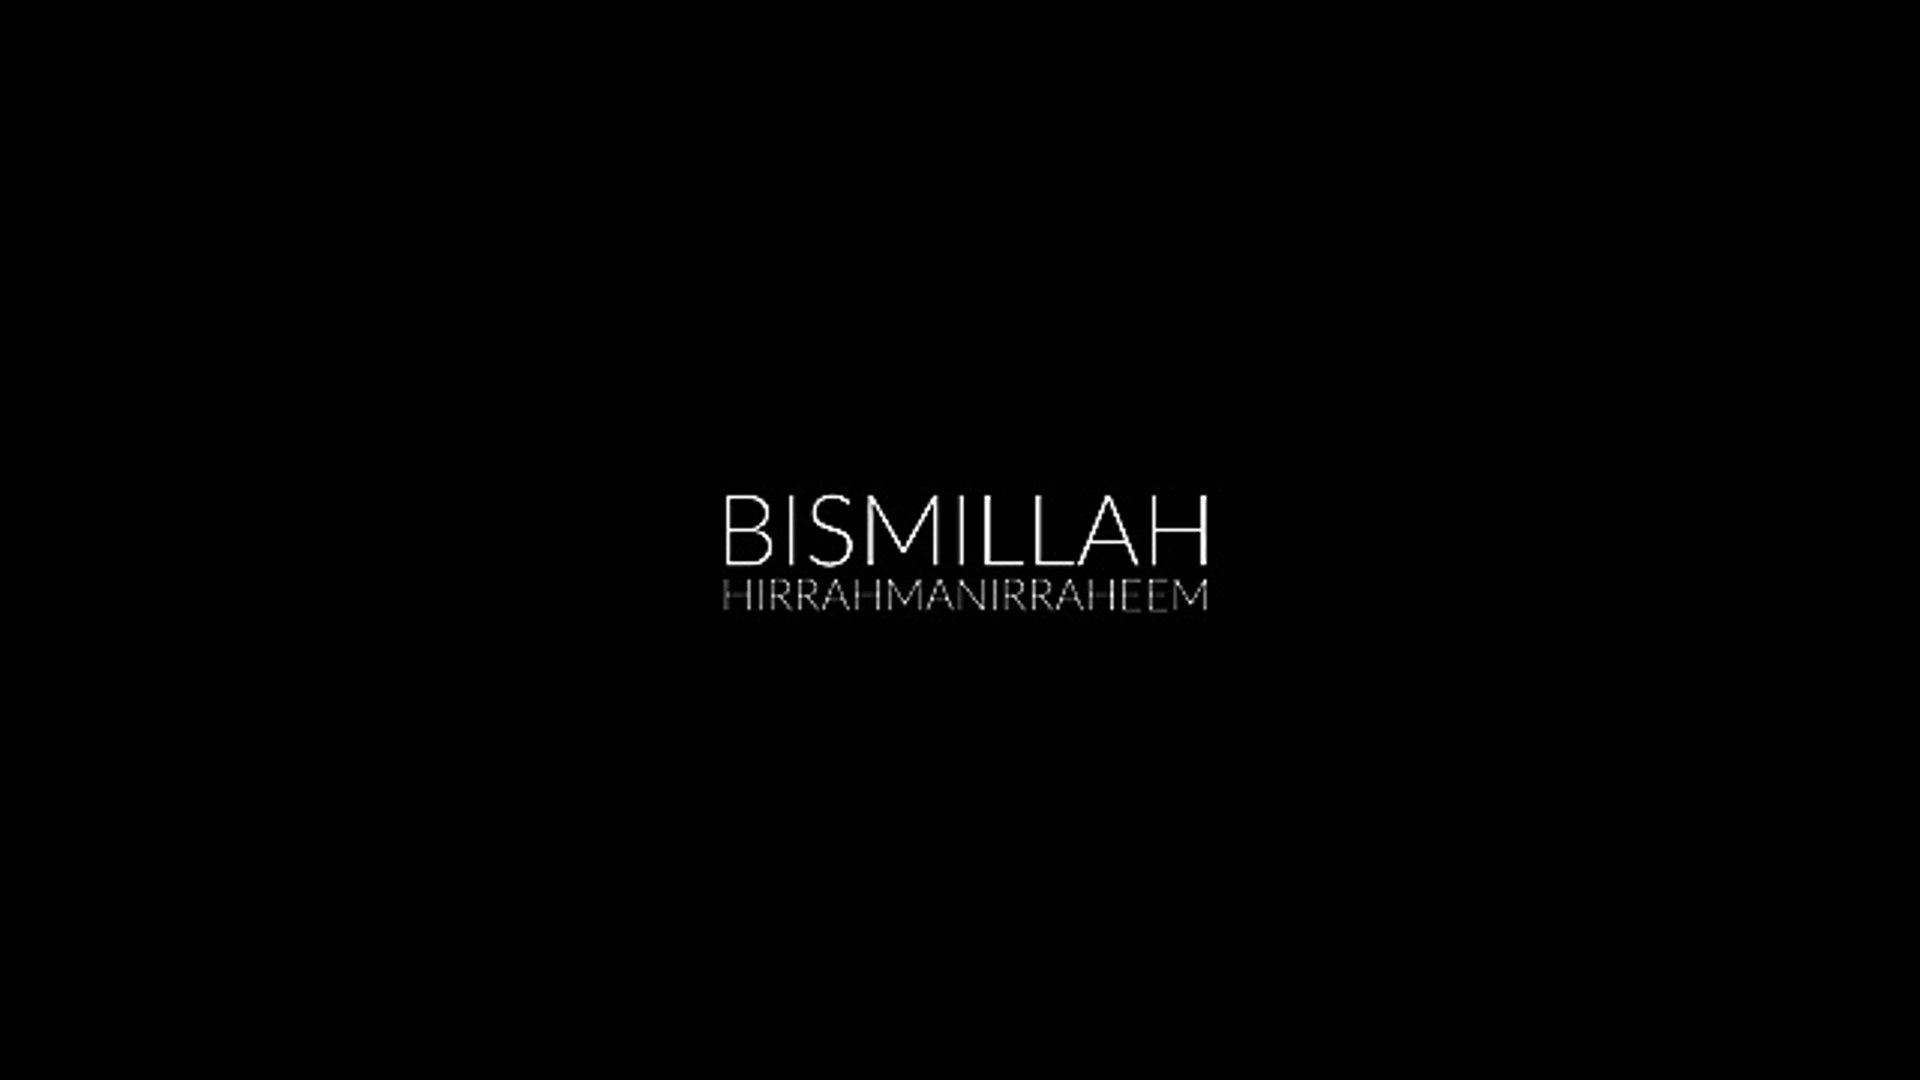 I Can't Breathe (Official Nasheed Video)